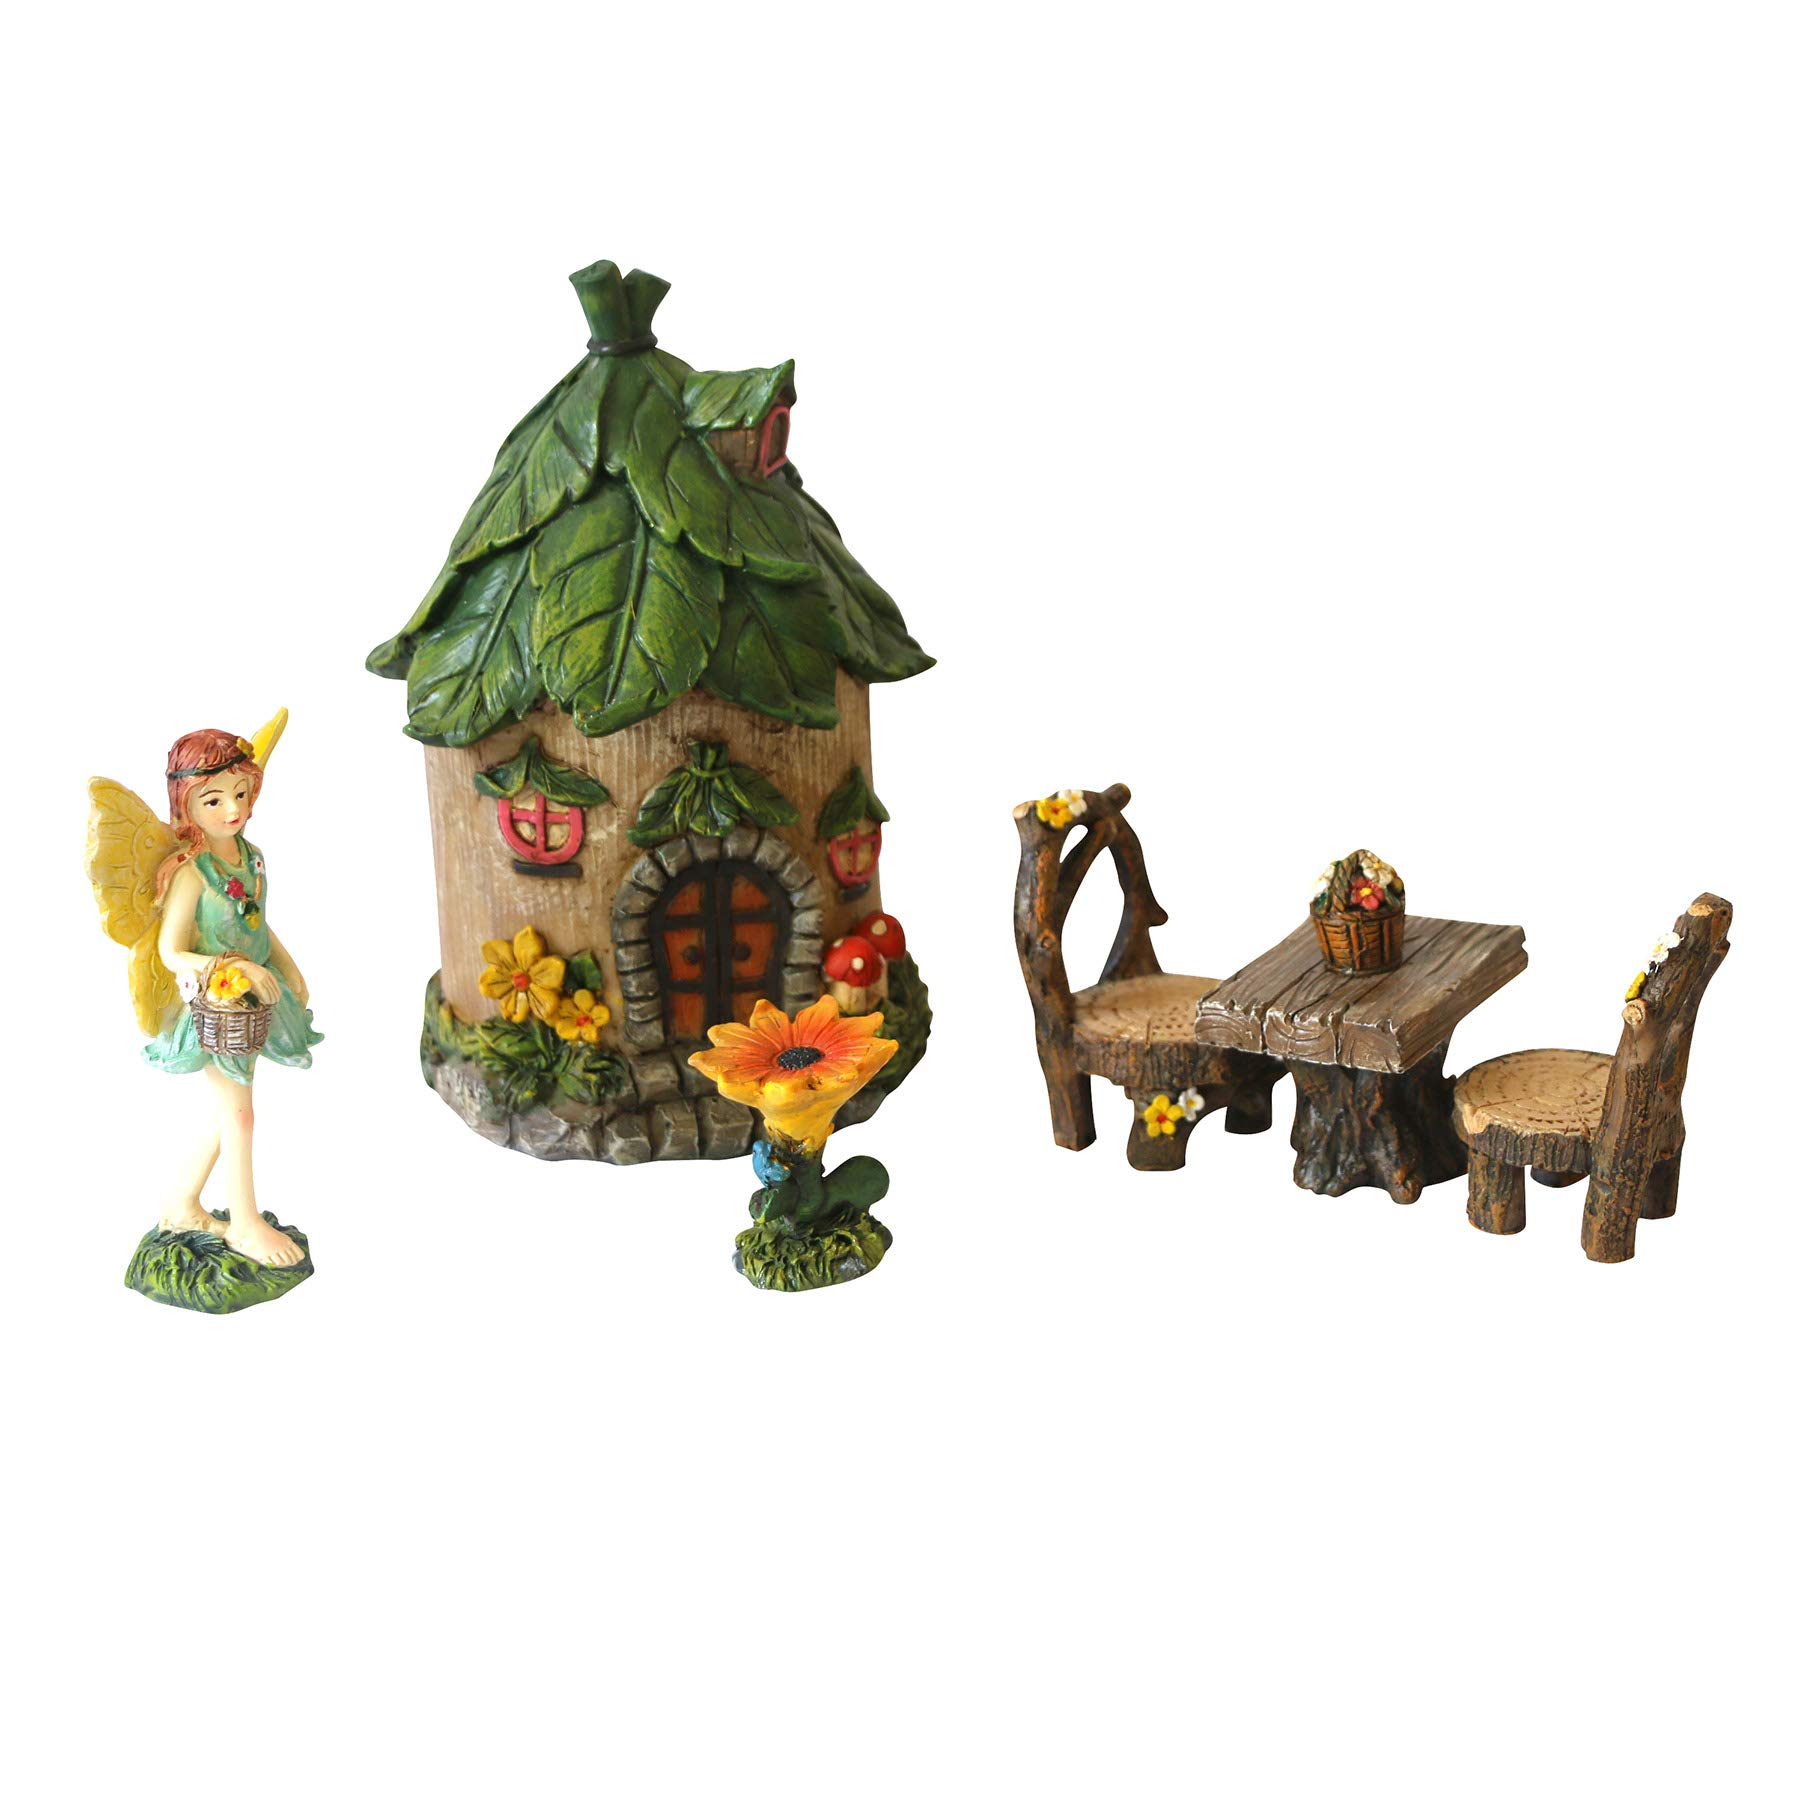 BangBangDa Miniature Fairy Garden Accessories - Small Fairy Figurines Decorations - Fairy House Table Chair Flower Kit for Mini Garden (Set of 6)